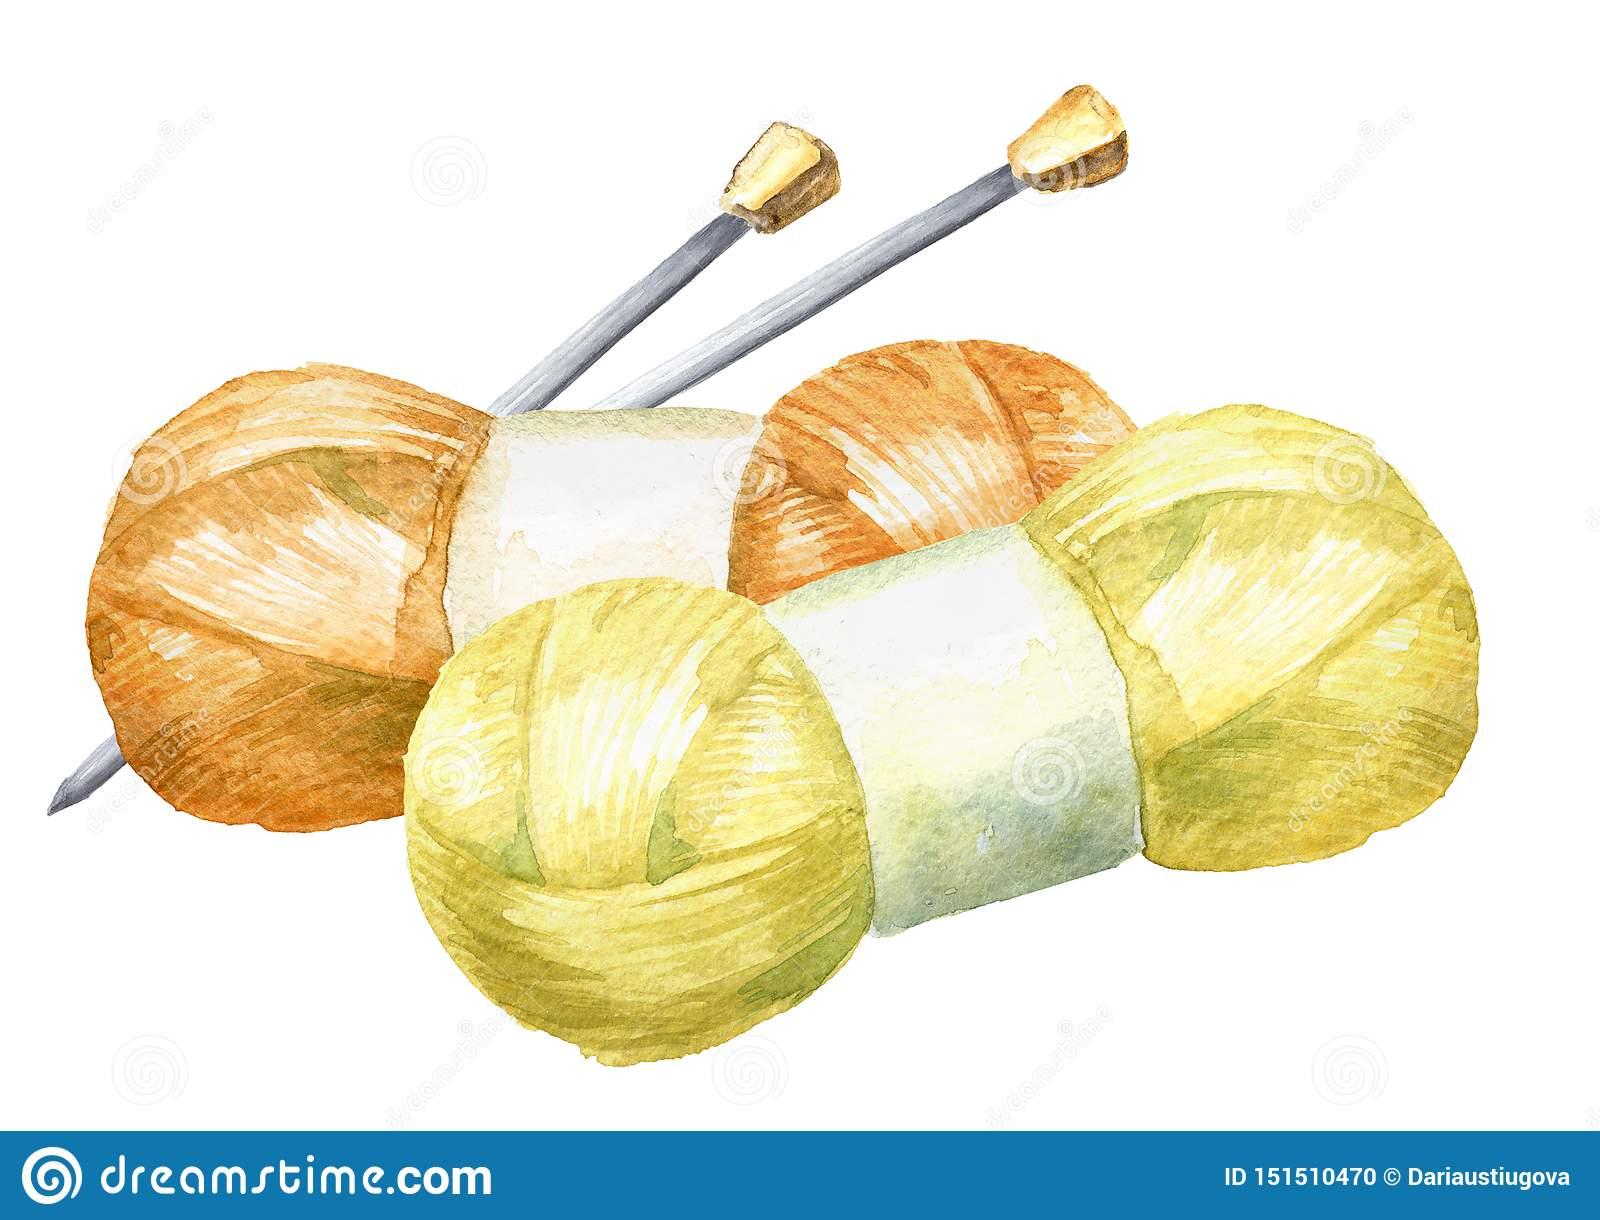 Skeins of yarn and knitting needles. Manual knitting concept. Watercolor hand drawn illustration, isolated on white background